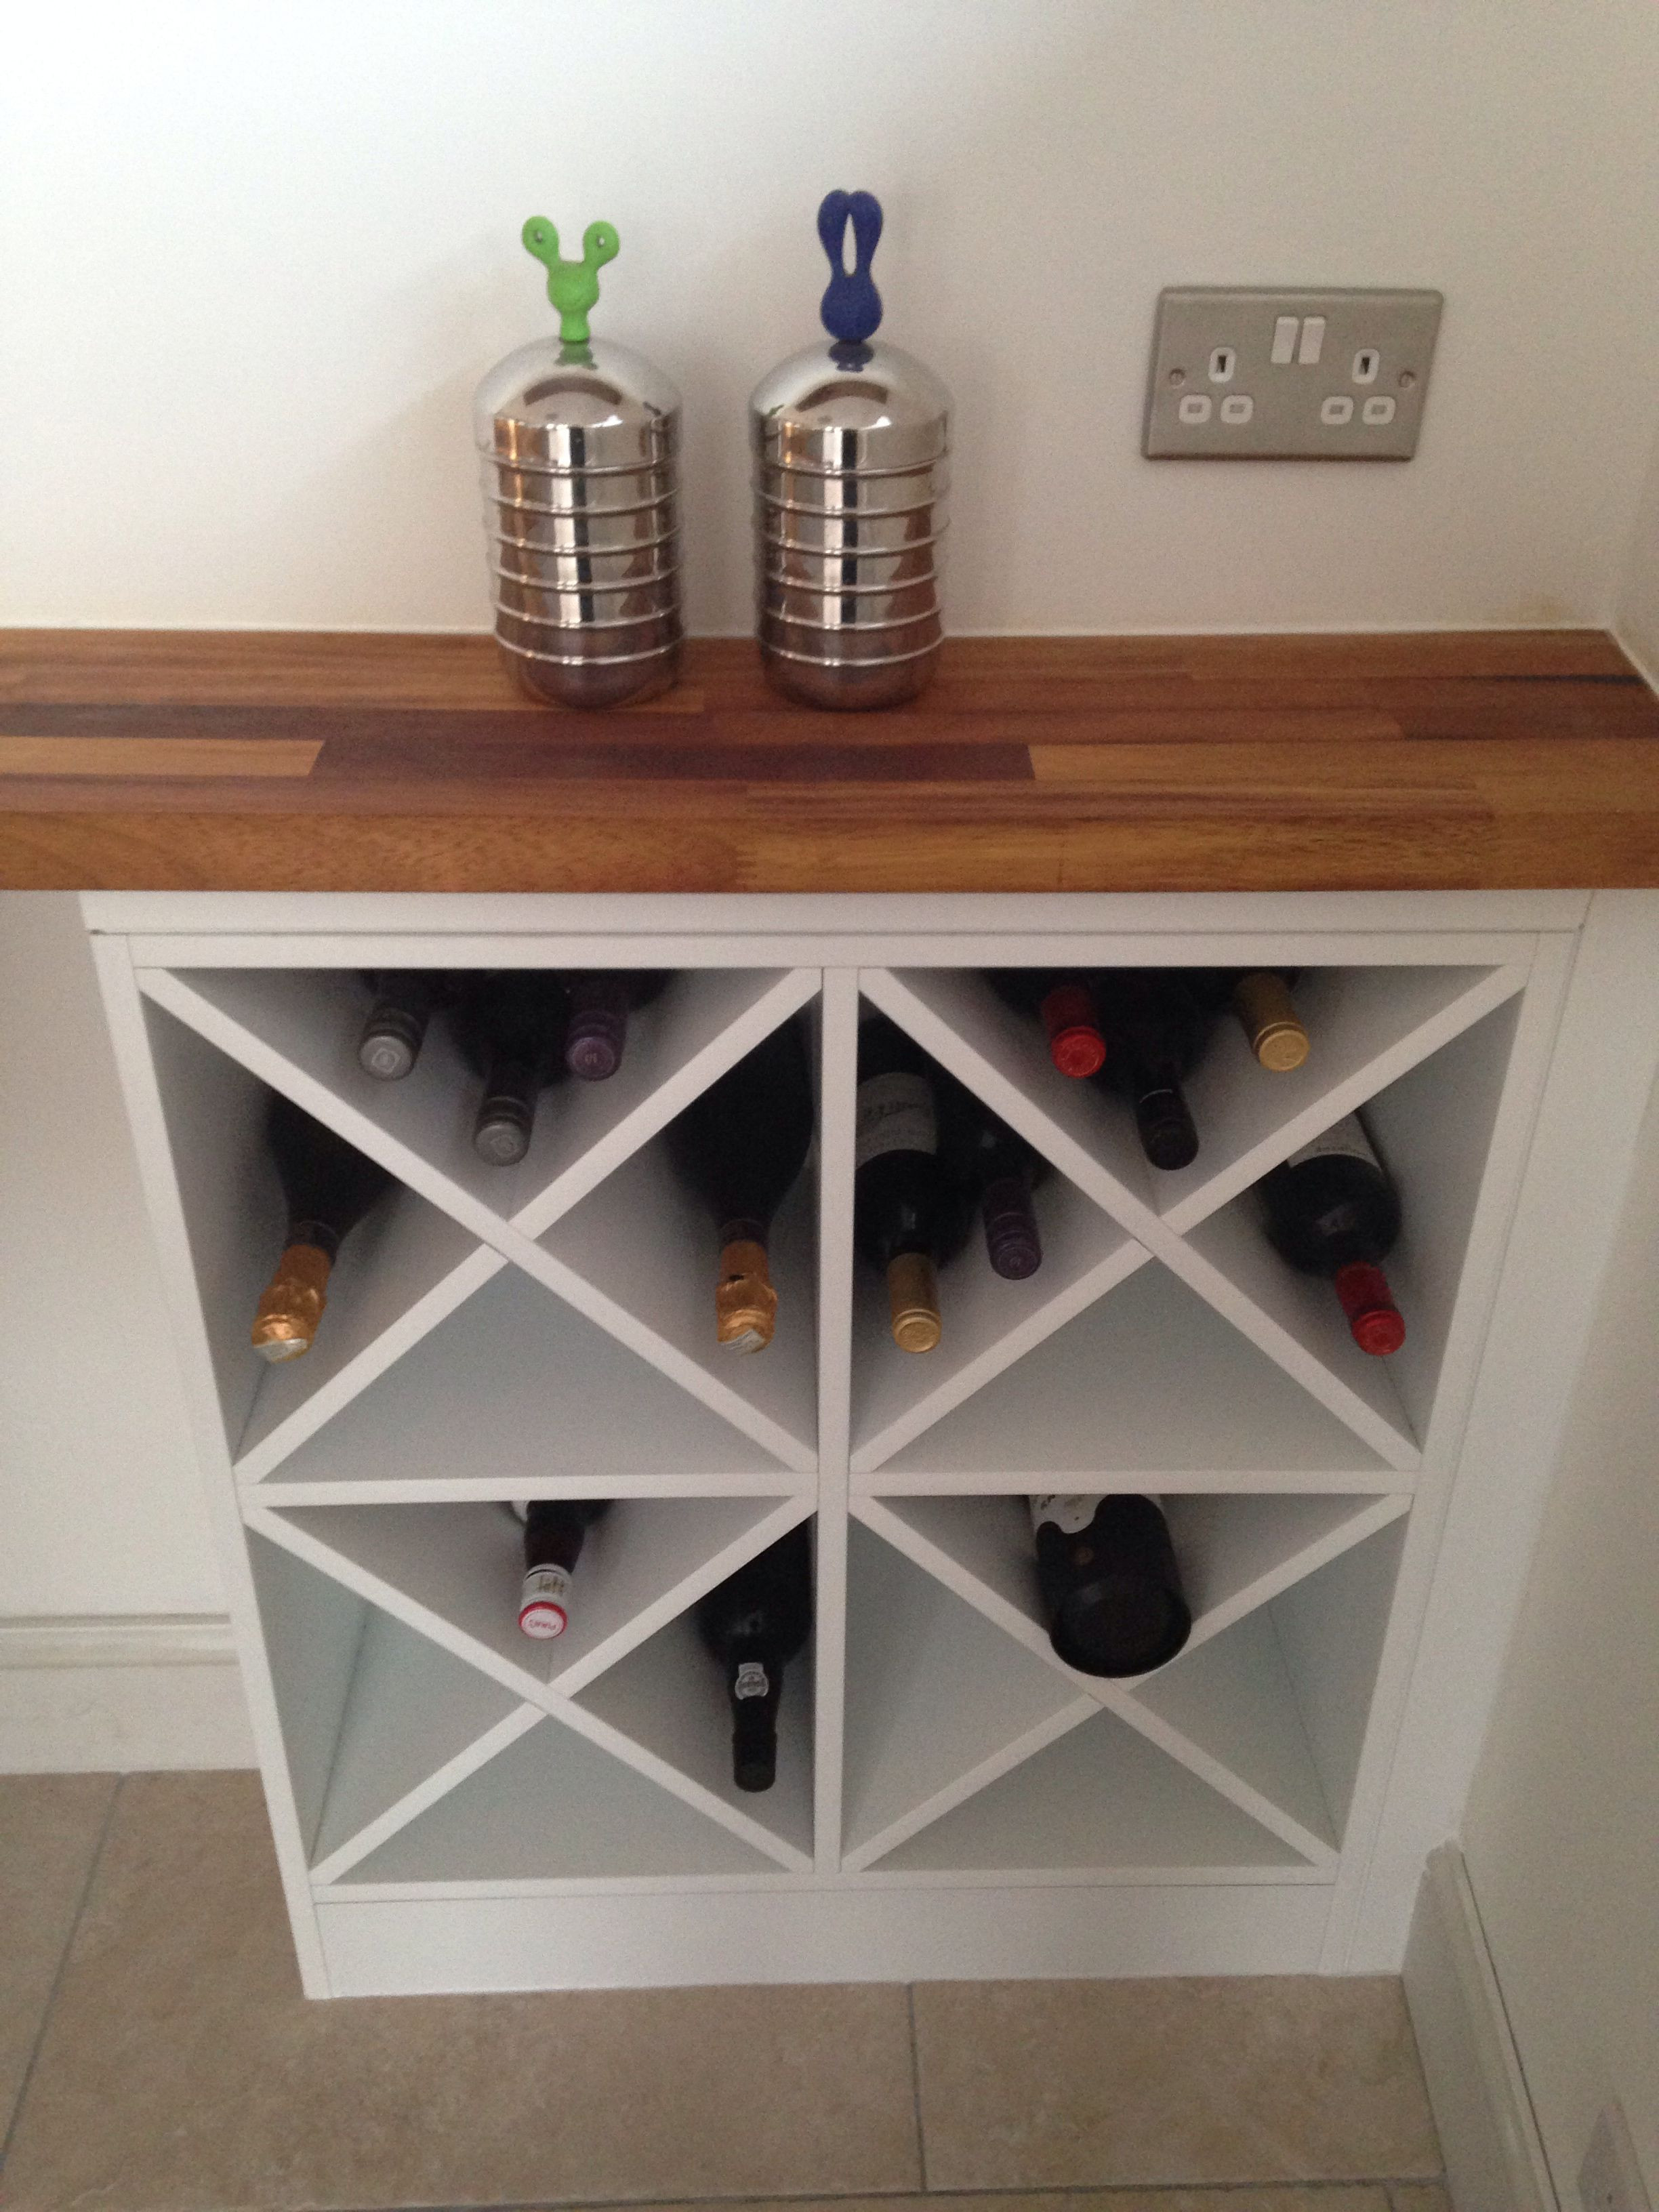 Best ideas about Wine Rack DIY . Save or Pin DIY wine rack Do it yourself Now.